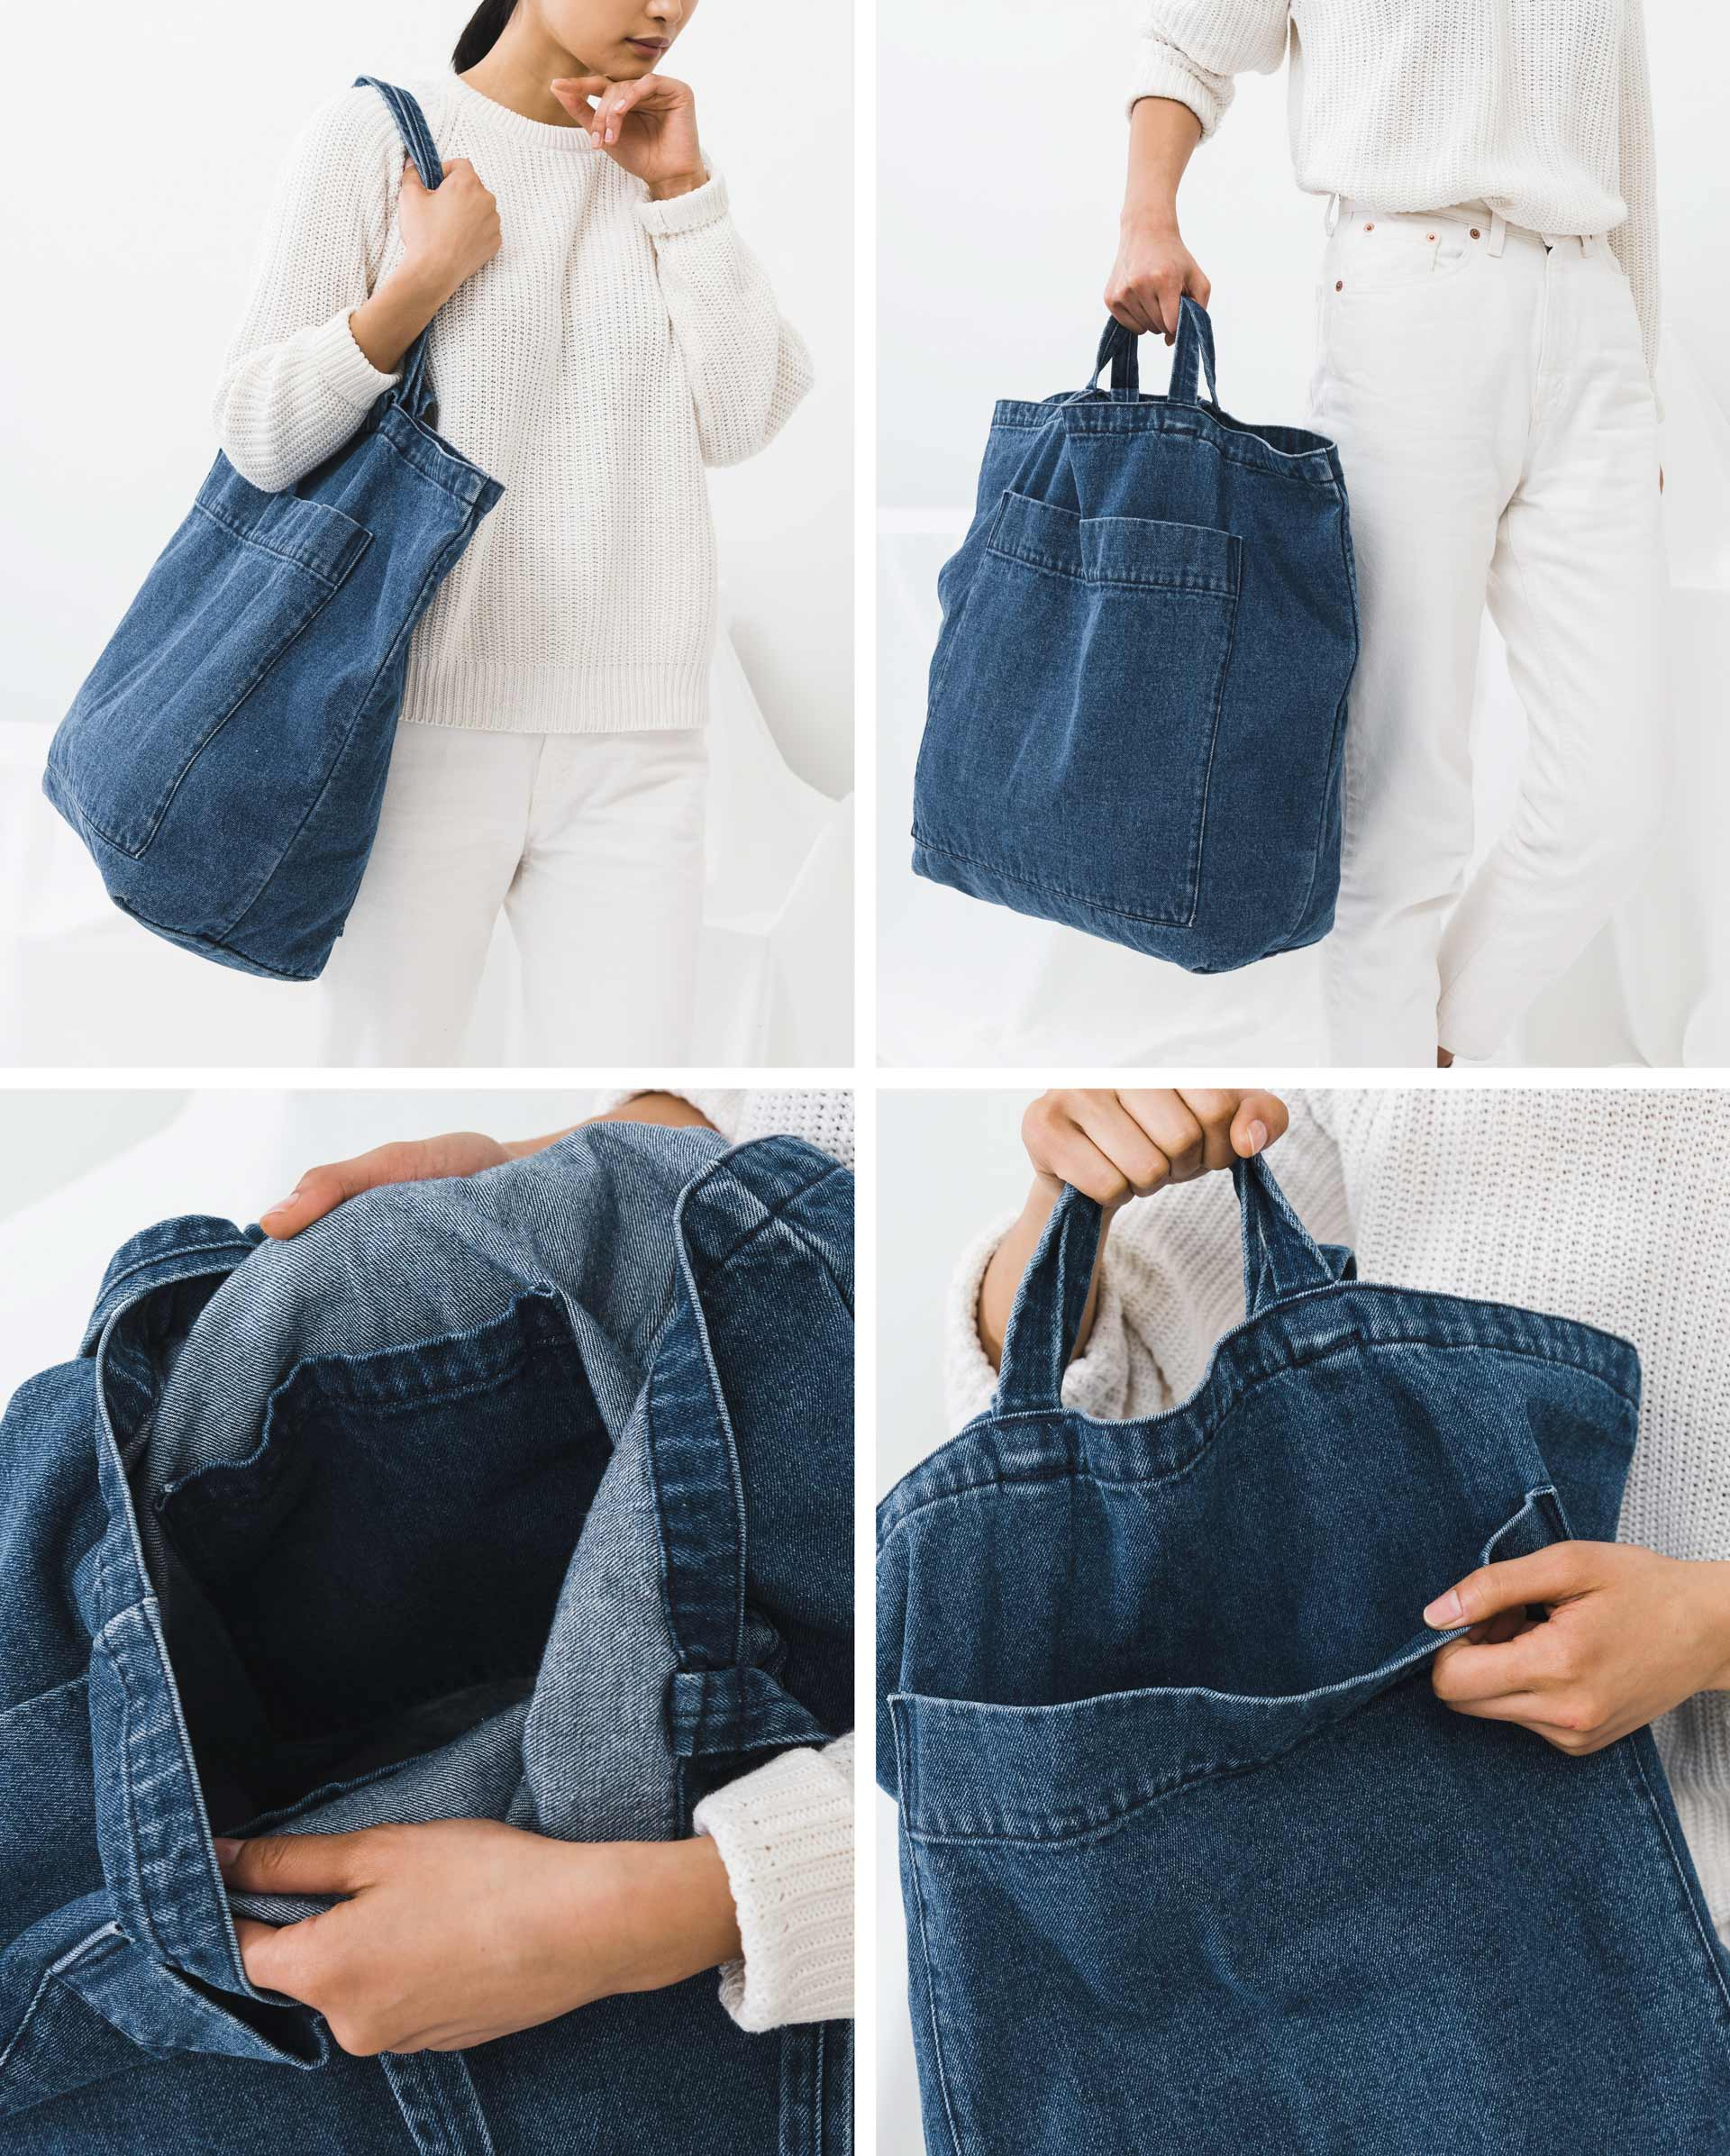 denim-giant-pocket-tote-garment-washed-denim-dark-02.jpg